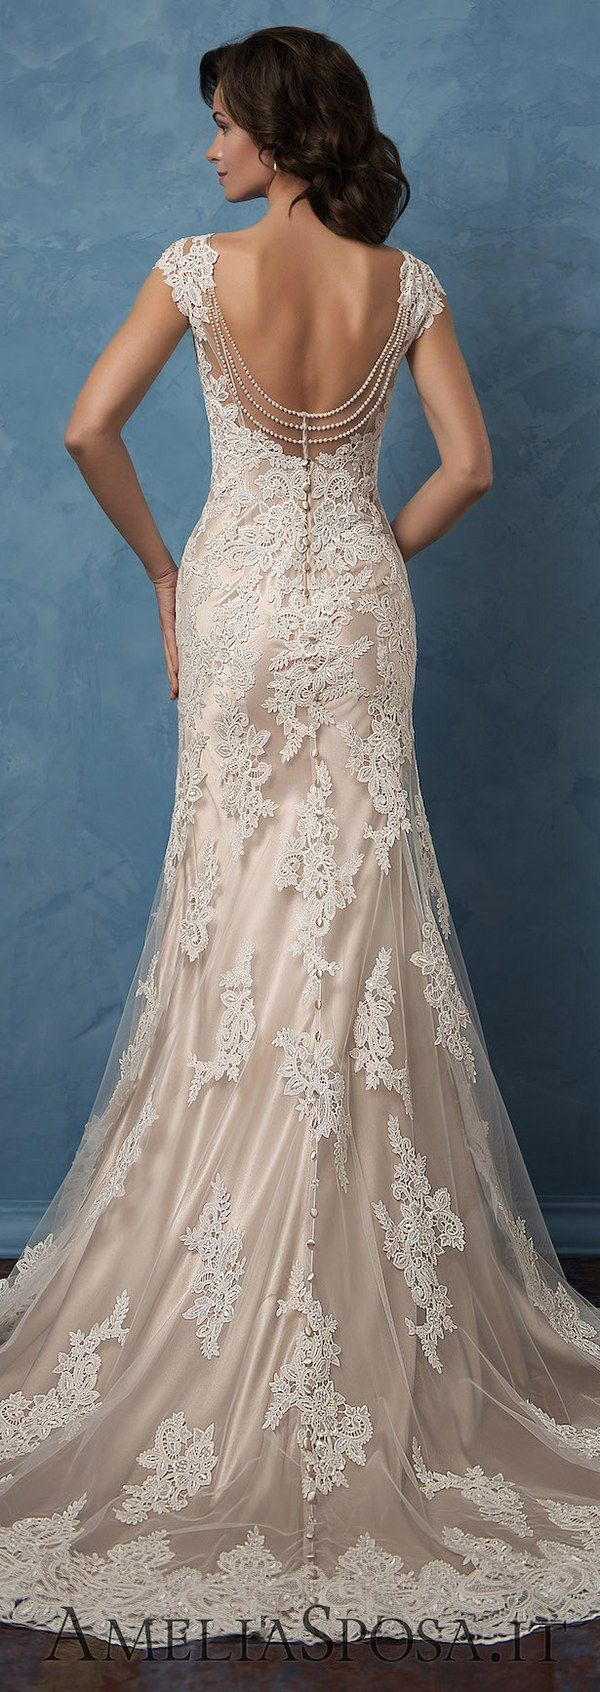 Amelia Sposa 2017 Wedding Dresses - Deer Pearl Flowers / http://www.deerpearlflowers.com/amelia-sposa-2017-wedding-dresses/